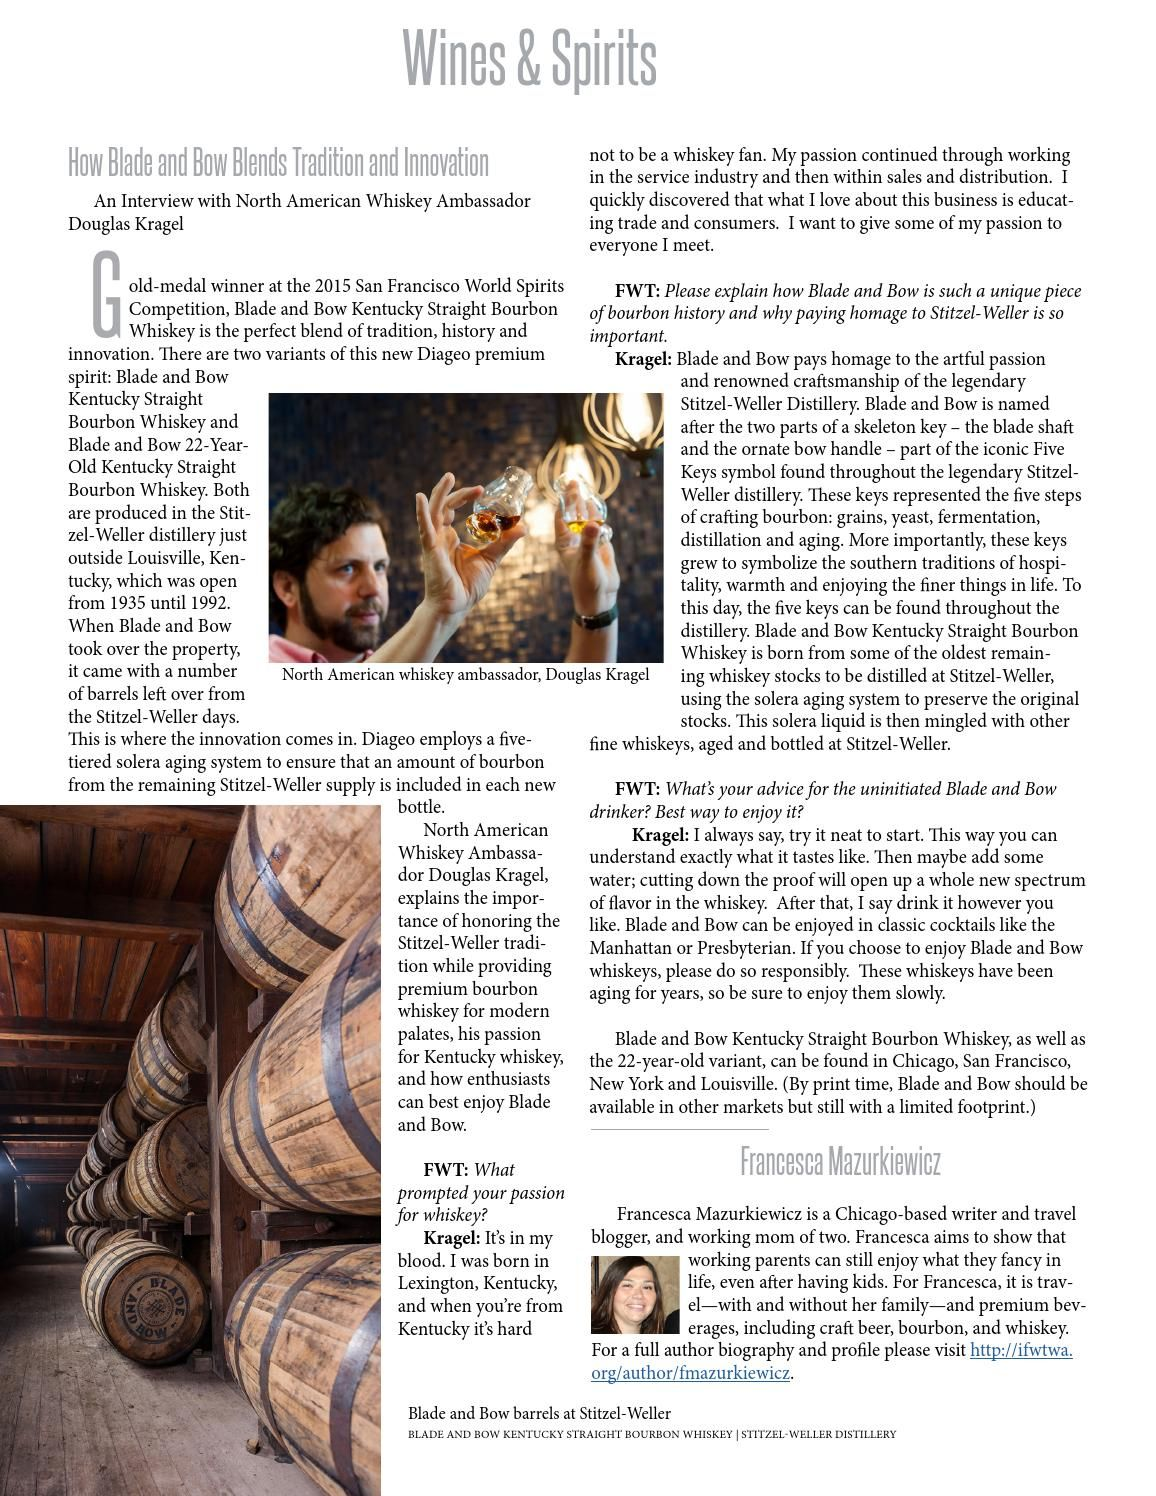 My interview with North American Whiskey Ambassador, Doug Kragel, for FWT Magazine